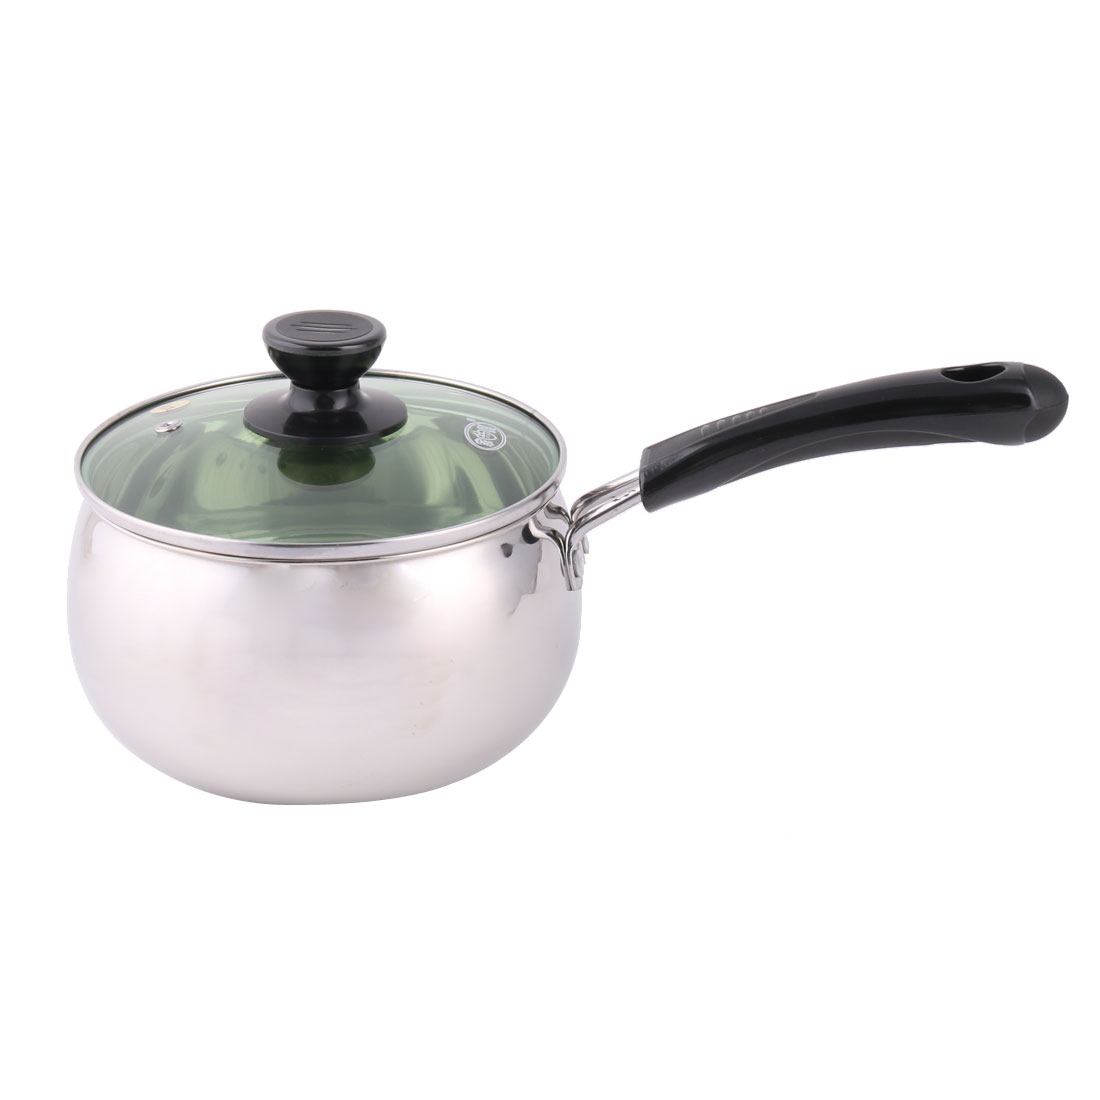 Restaurant Kitchenware Plastic Handle Stainless Steel Food Milk Soup Pot Pan Silver Tone